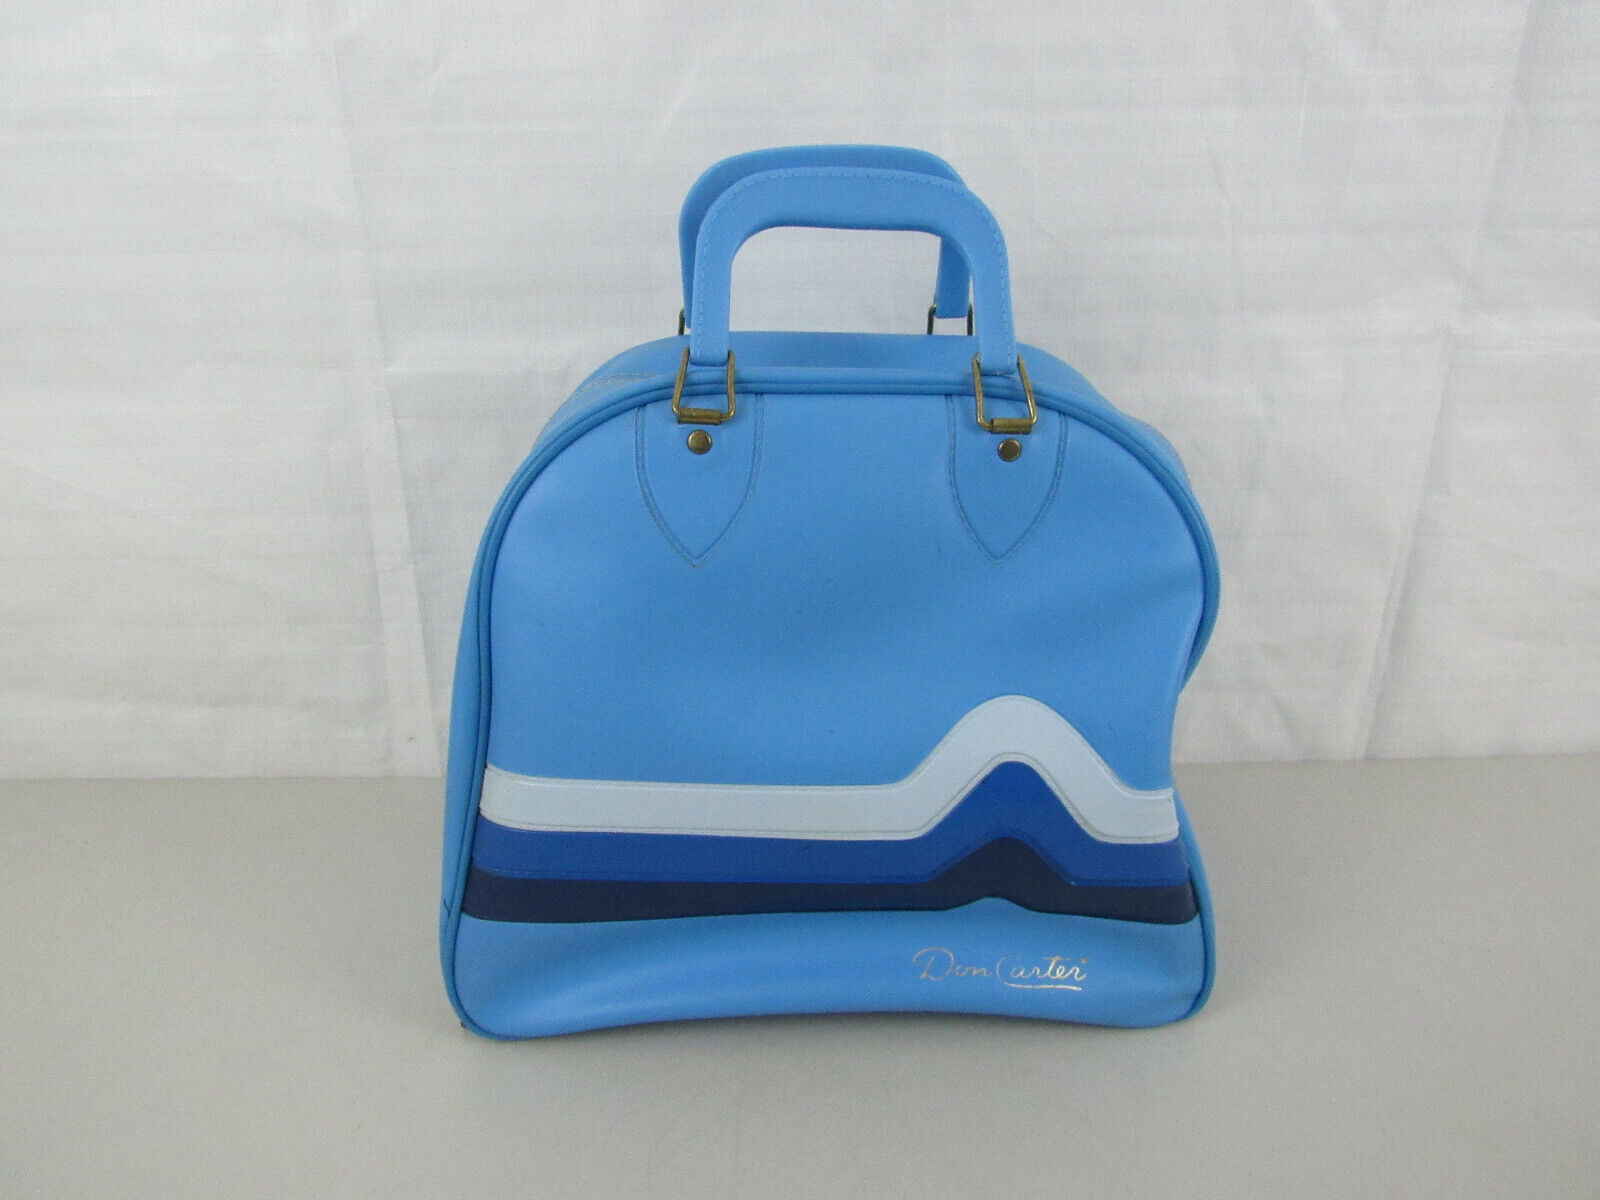 Vintage Don Carter Bowling Bag with Chevron Design & Wire Ball Support.